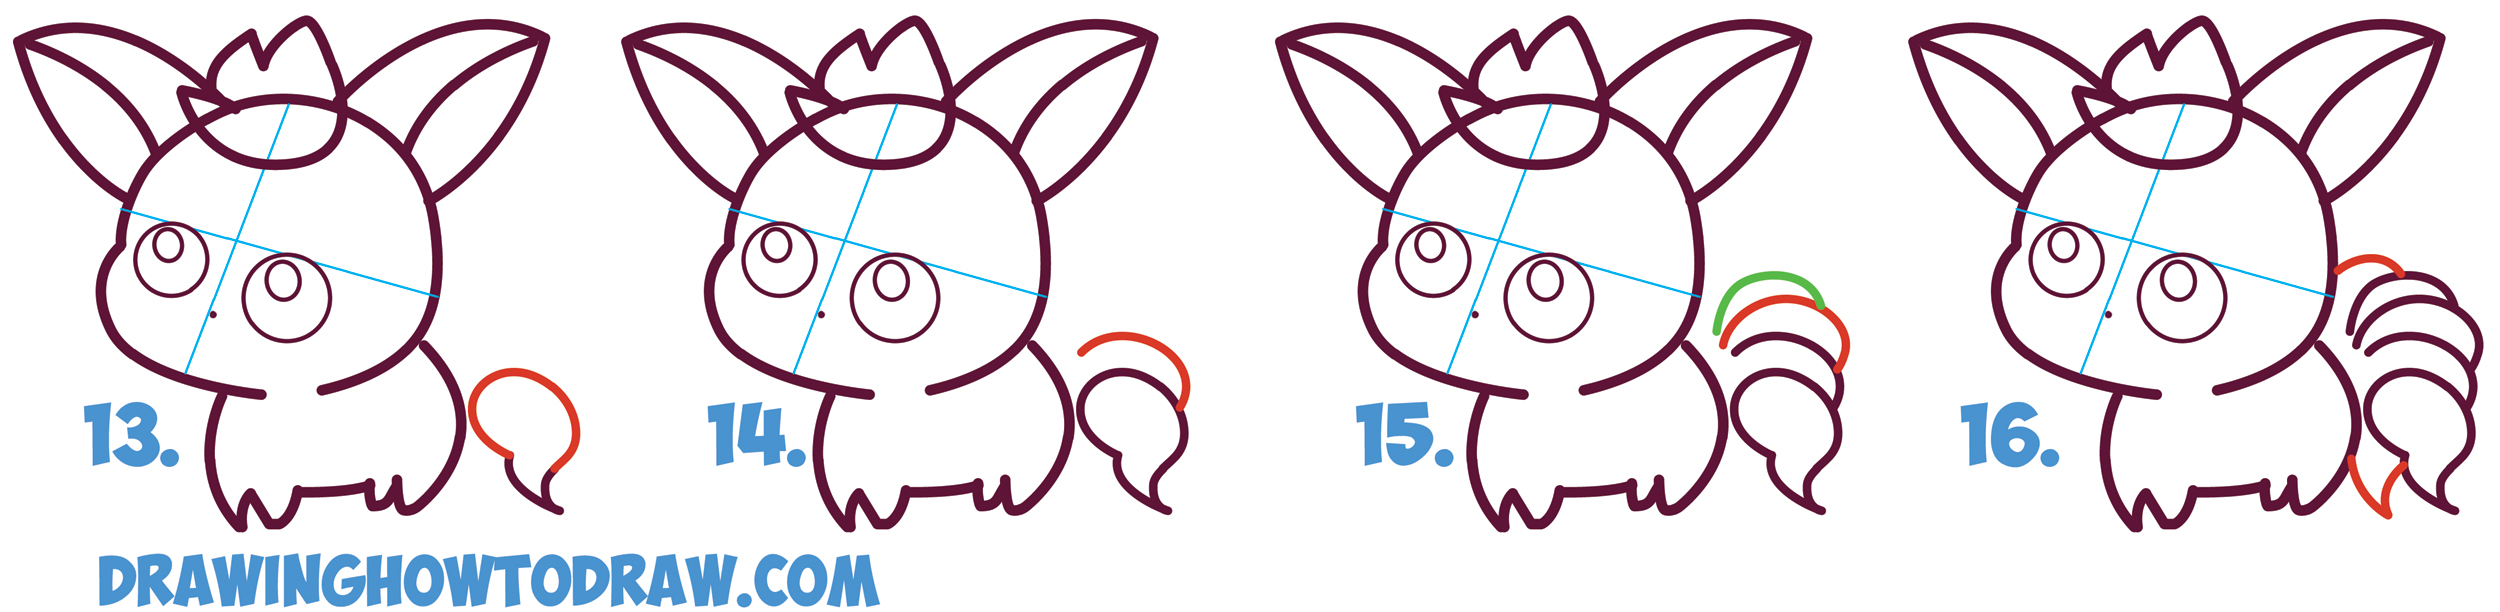 Learn How to Draw Cute / Kawaii / Chibi NineTales from Pokemon in Simple Steps Drawing Lesson for Kids